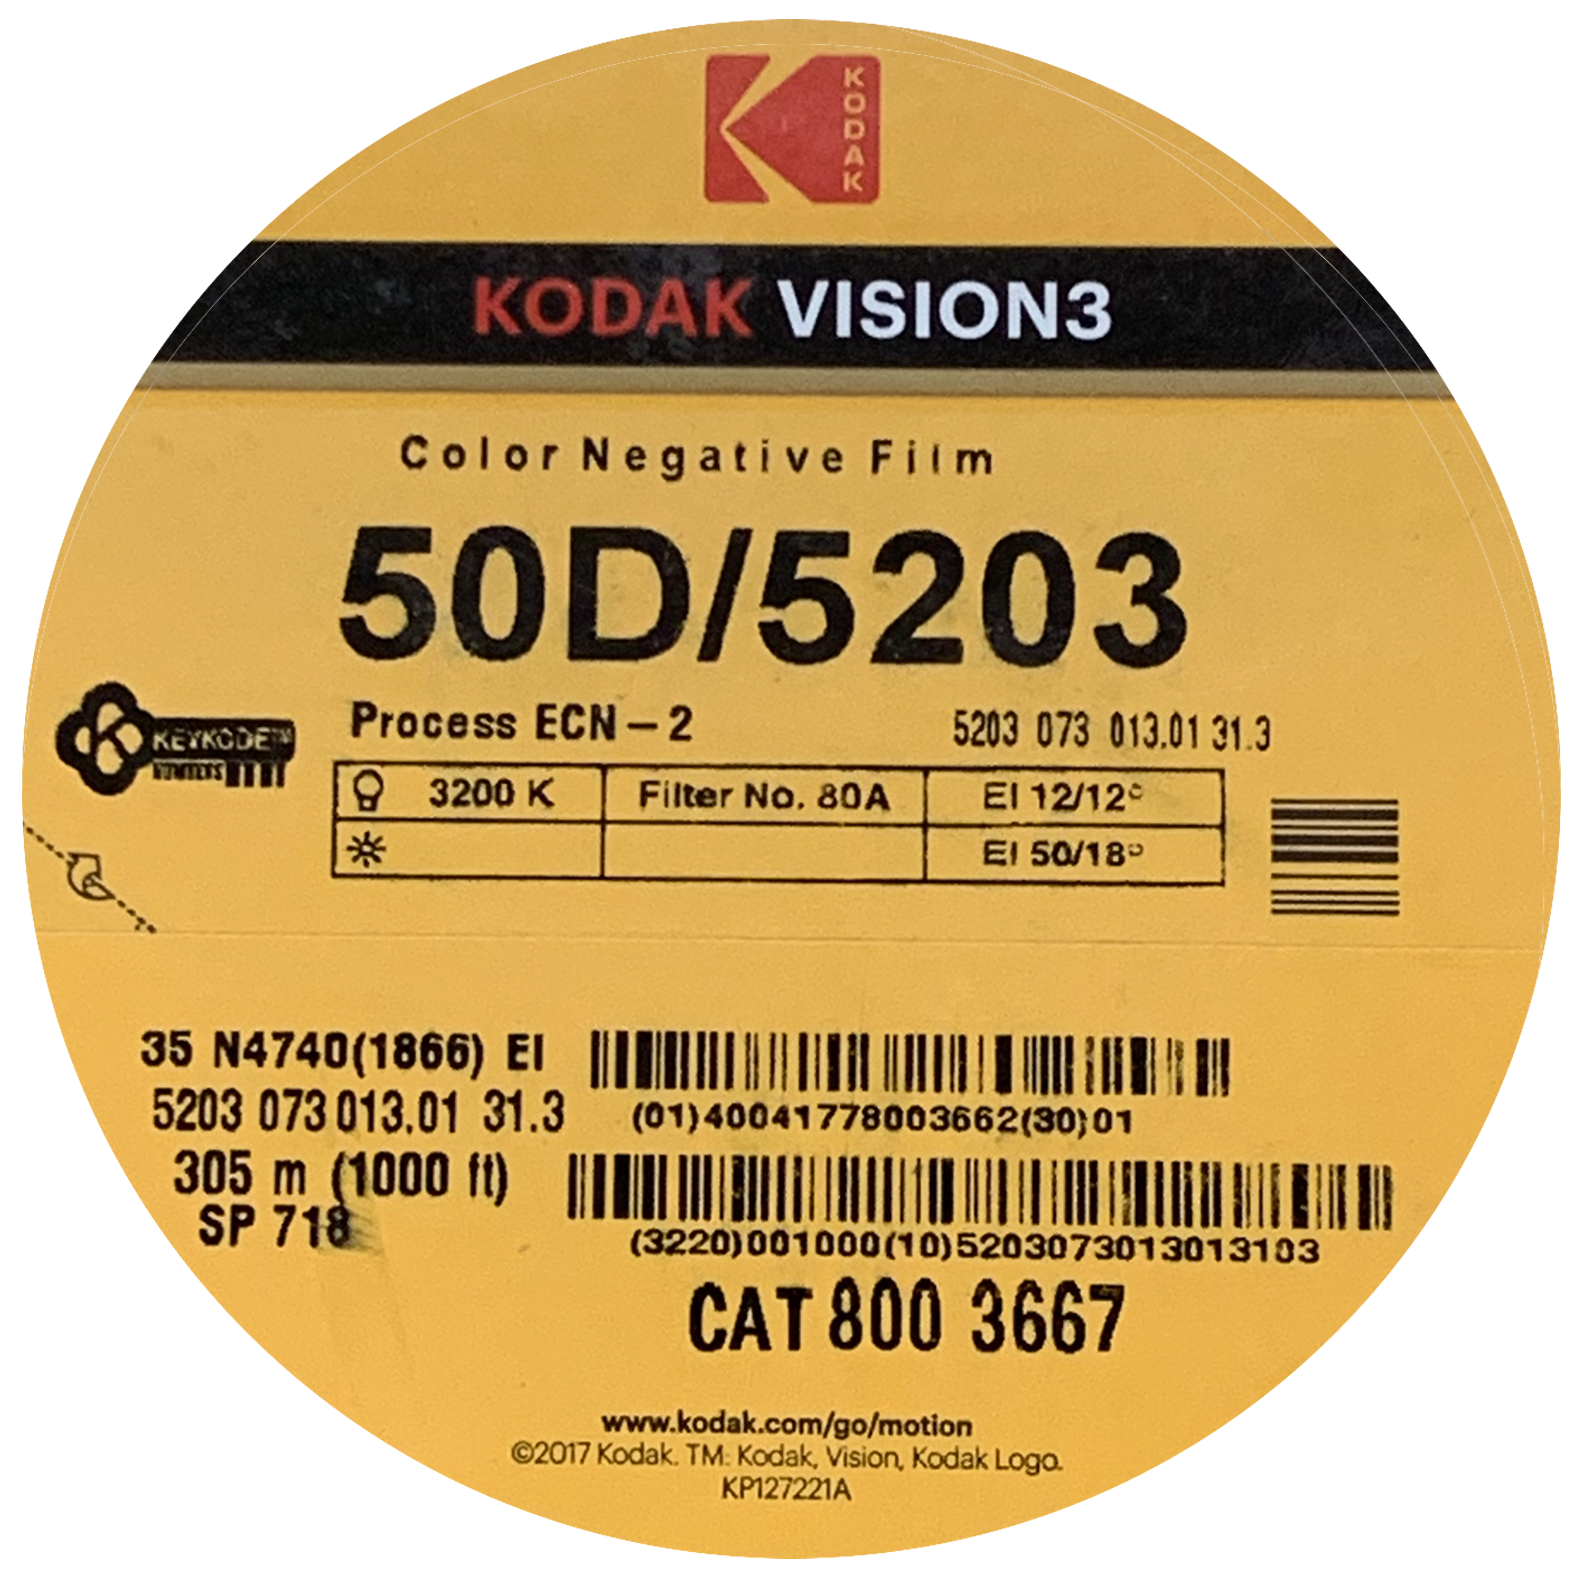 VISION 3 COLOR NEGATIVE FILM 5203'   KODAK COLOR NEGATIVE 35MM 50D (10% OFF LIST PRICE) $692.50 - 1000 FT ON CORE $284.90 - 400 FT ON CORE $0.56 / FT - SHORT ENDS (deeply discounted!)